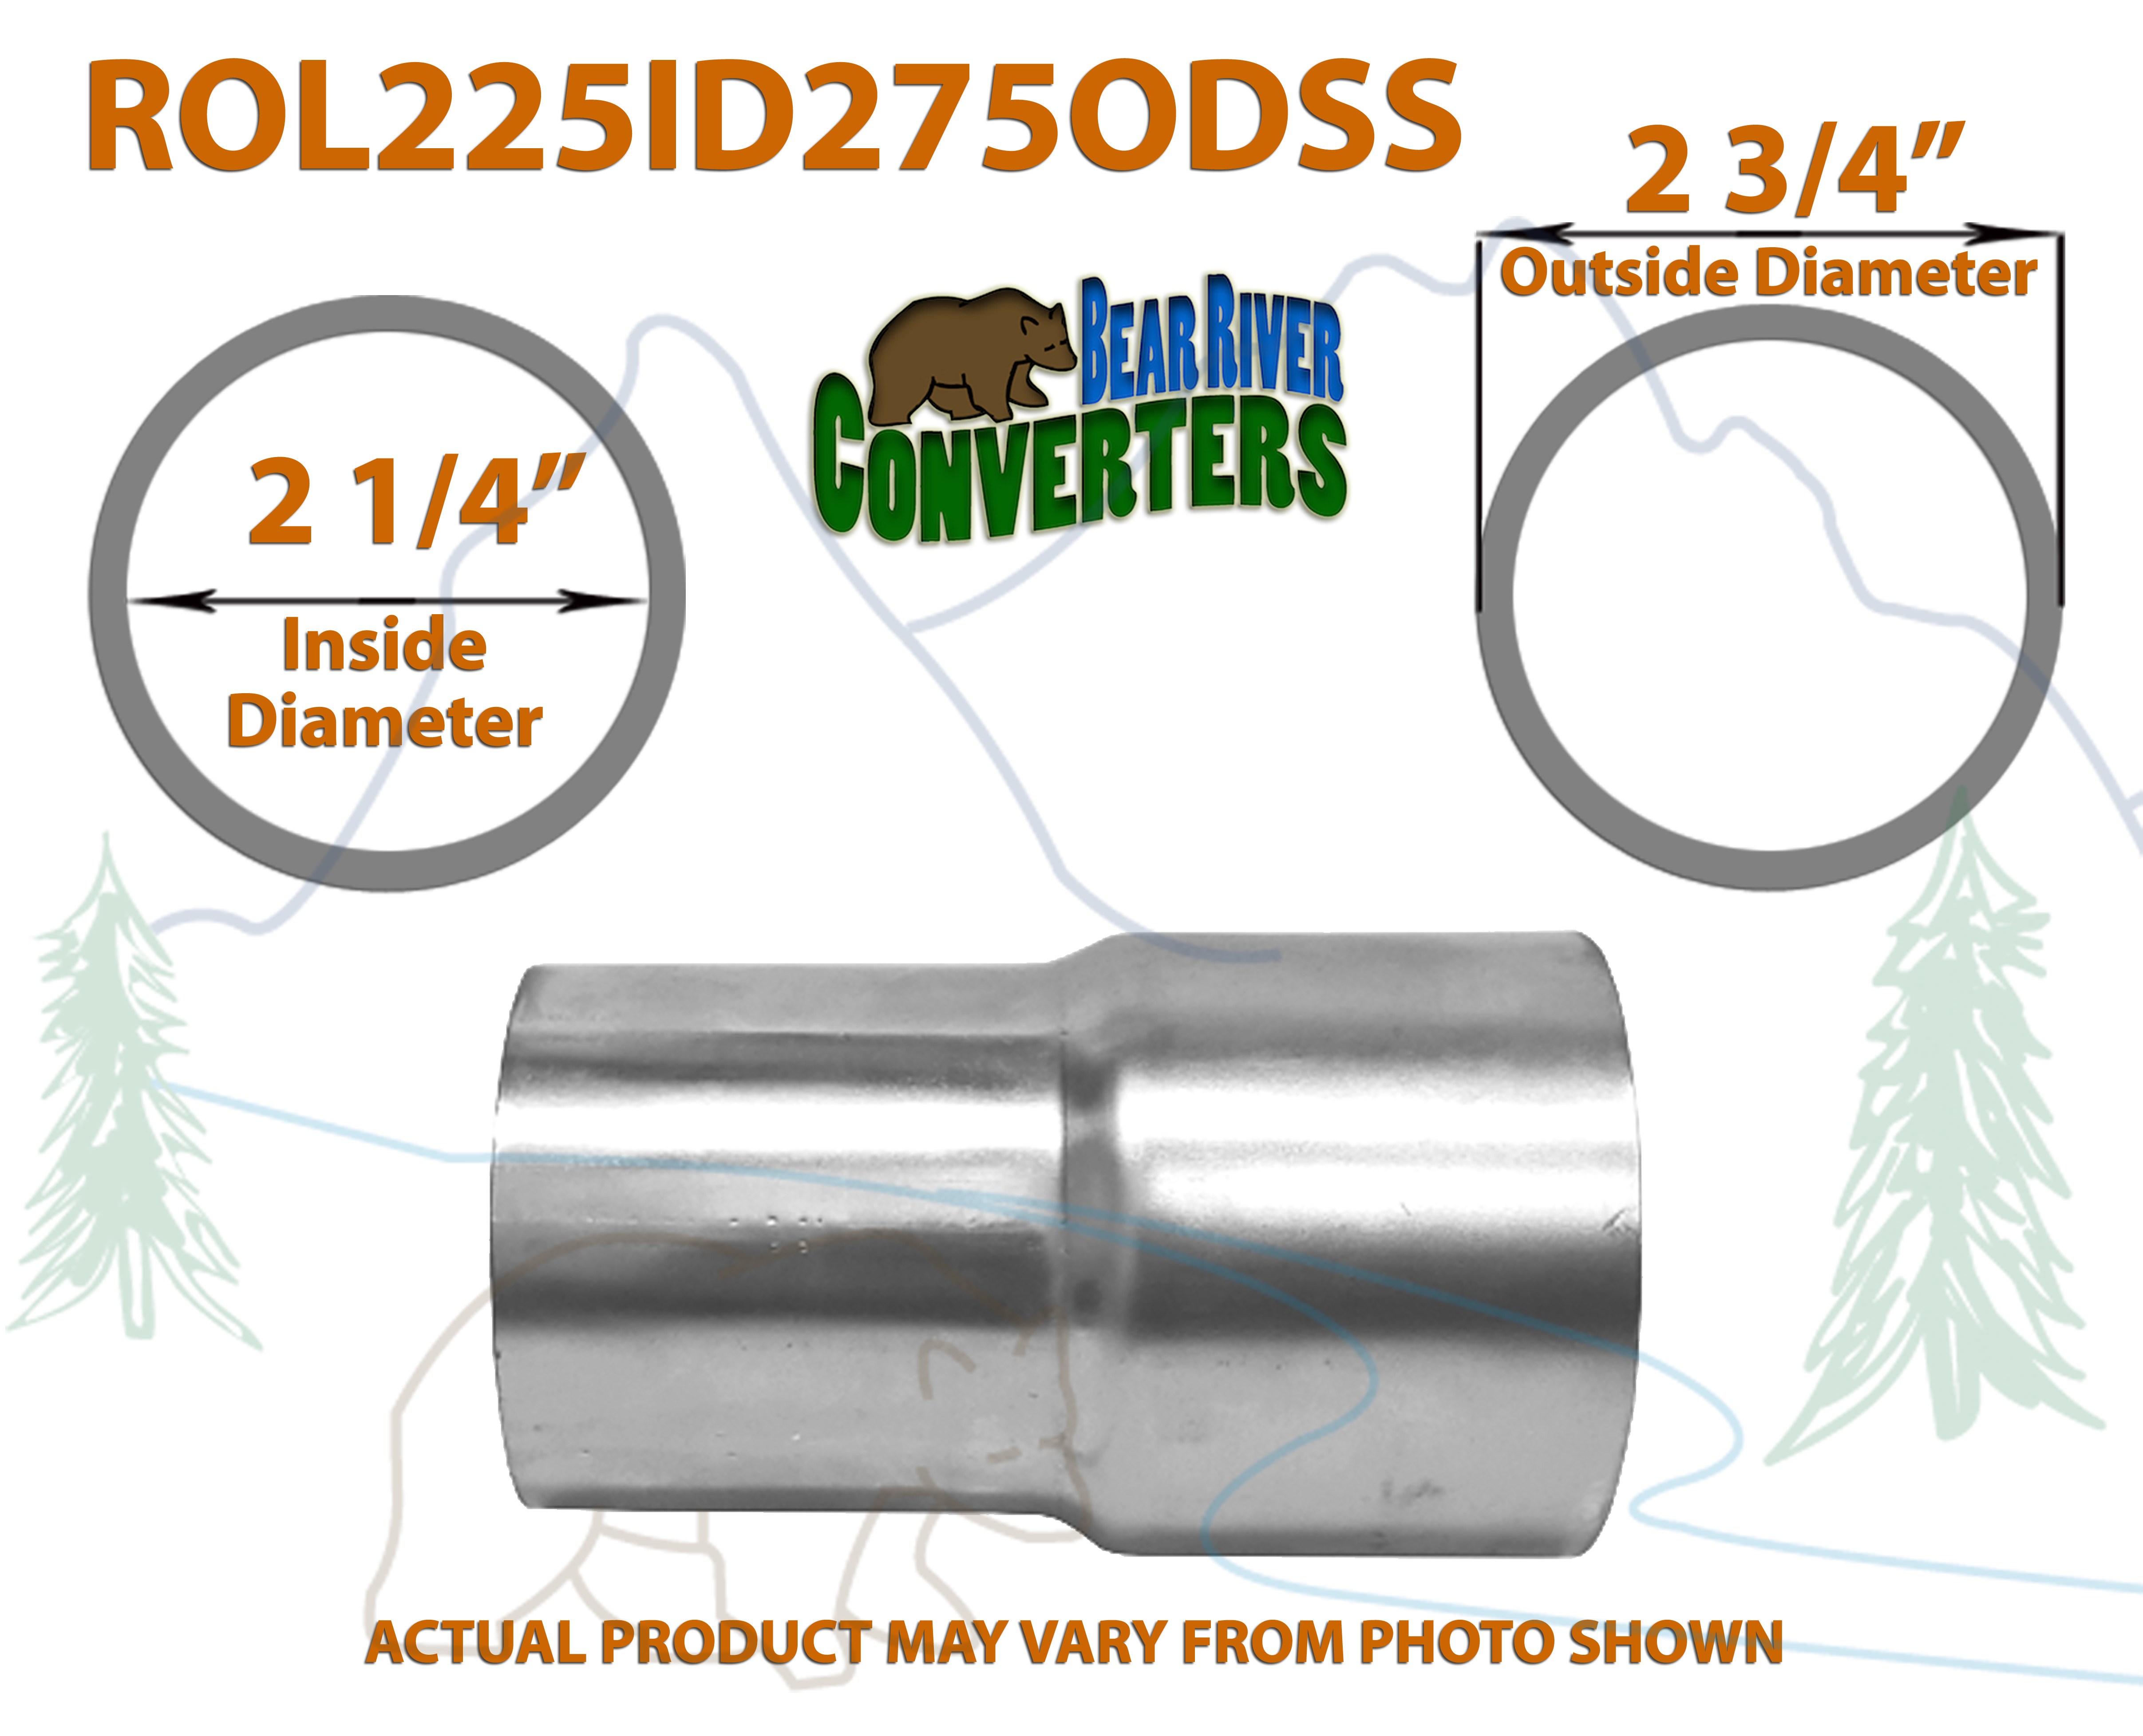 "2 1//4"" 2.25 ID x 2 3//4"" 2.75 OD Stainless Exhaust Pipe Component Adapter Reducer"